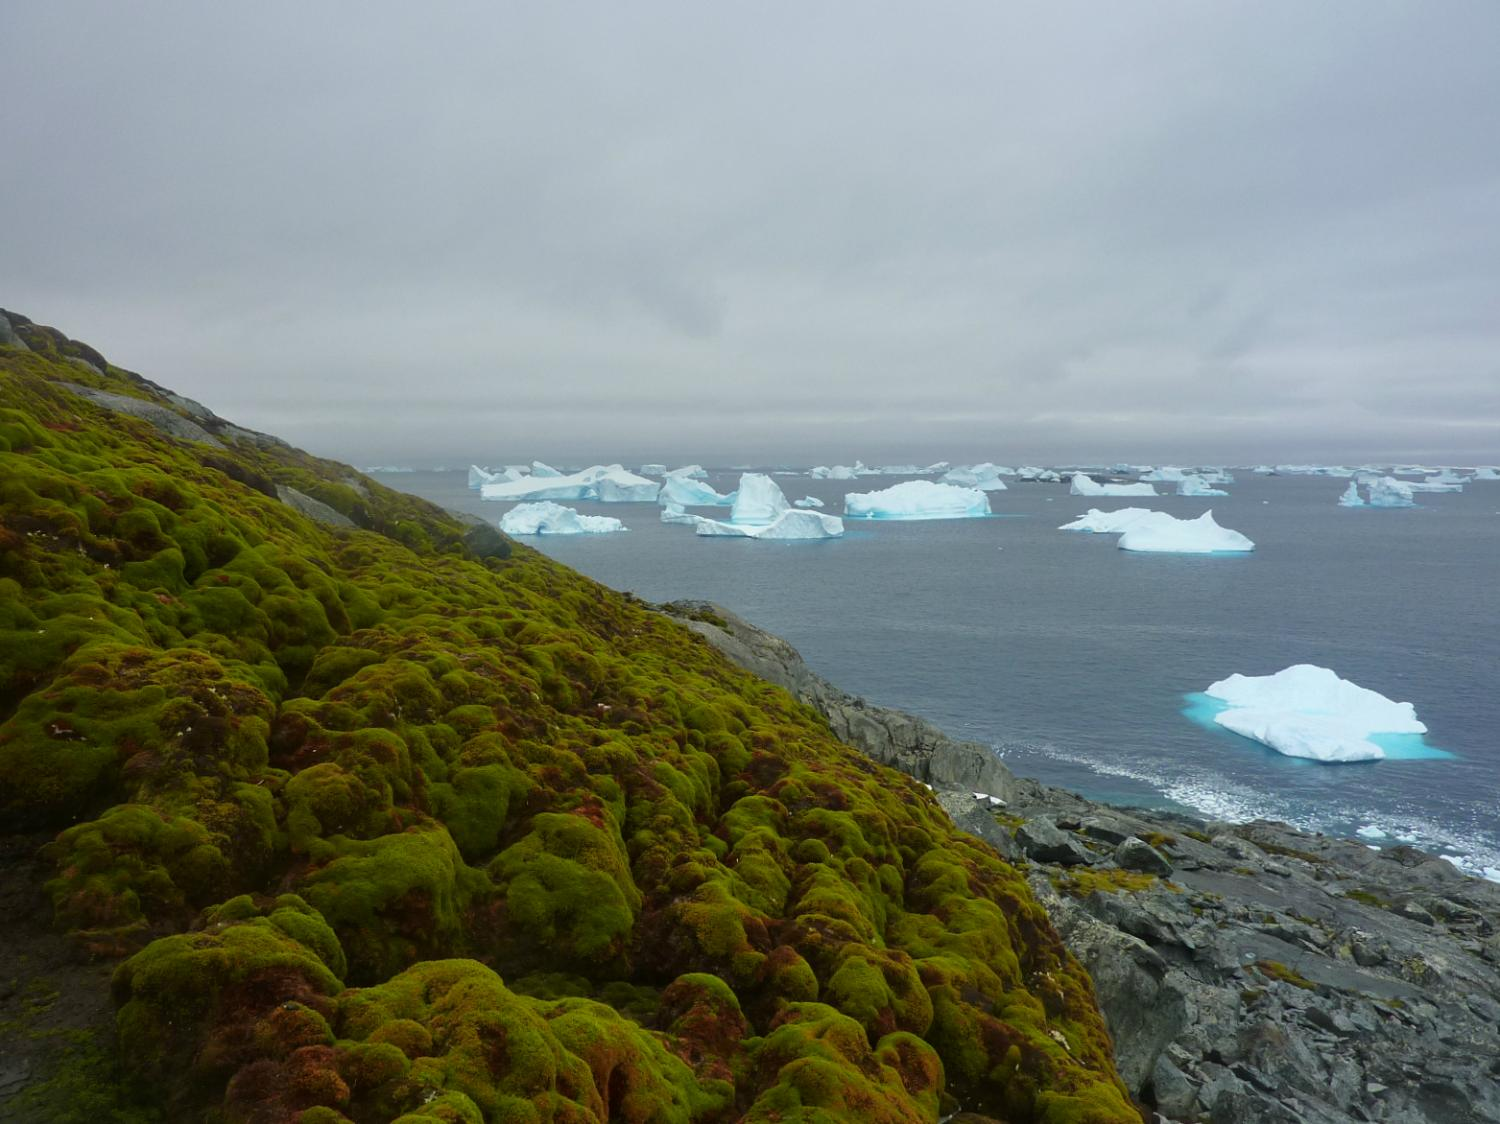 Antarctica 'greening' due to climate change